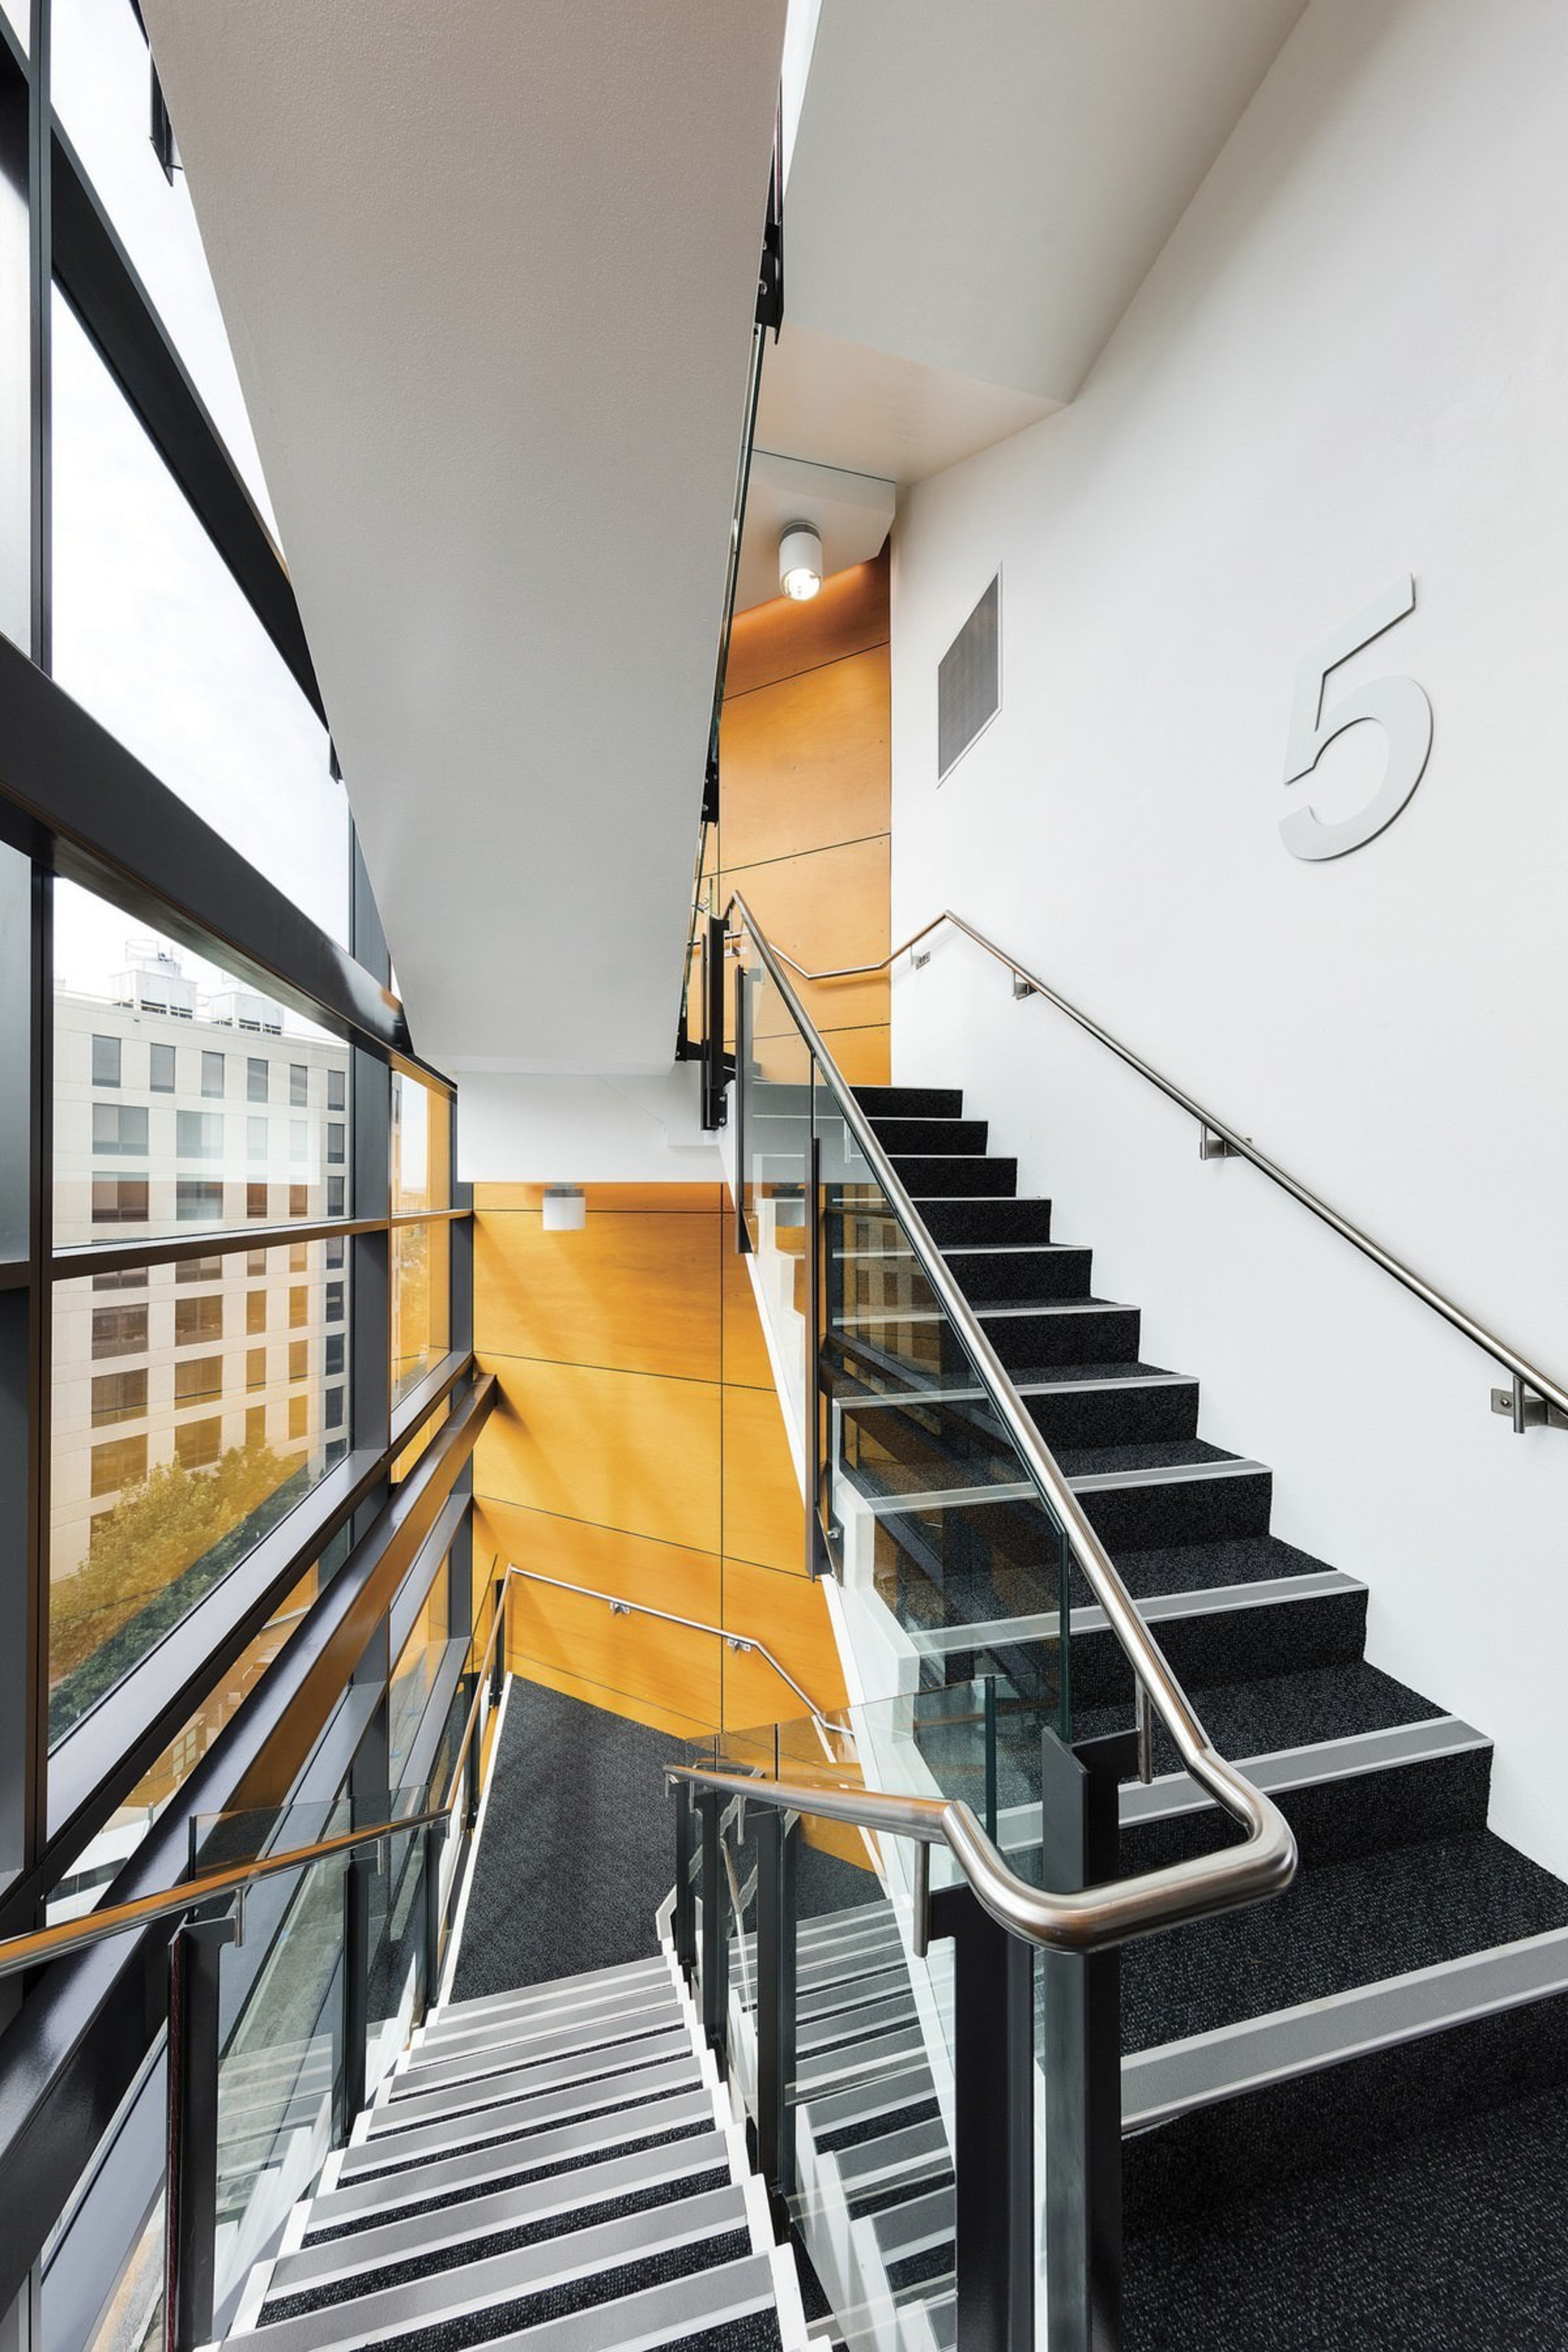 Newcastle Courthouse – Cox Architecture - Newcastle Courthouse architecture, building, daylighting, glass, handrail, house, interior design, stairs, gray, white